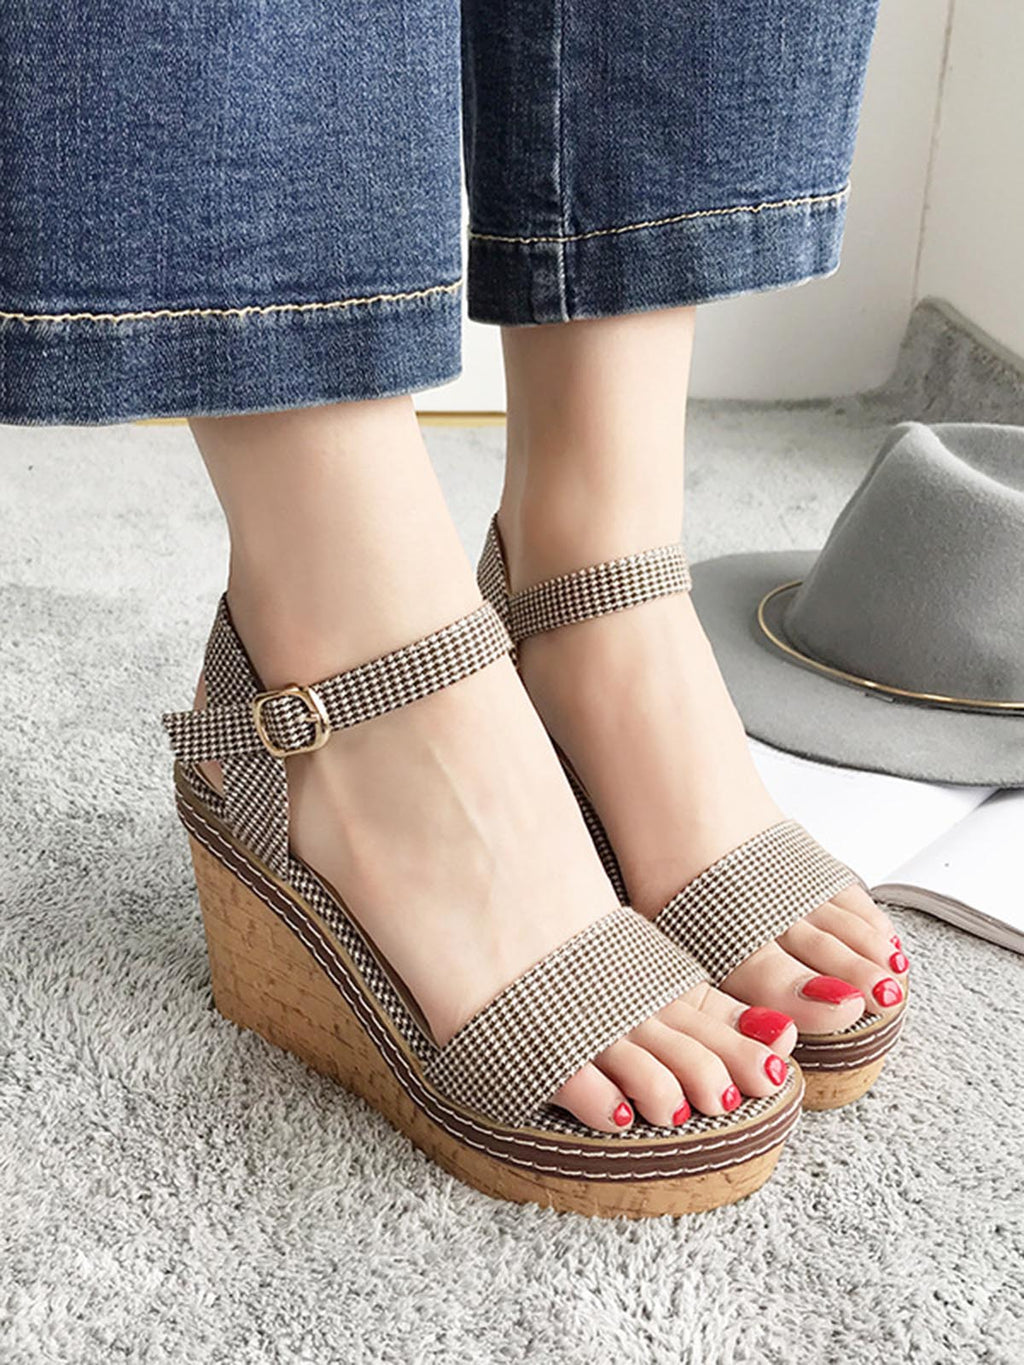 New Plaid High Heel Peep Toe with Buckled Wedge Sandals